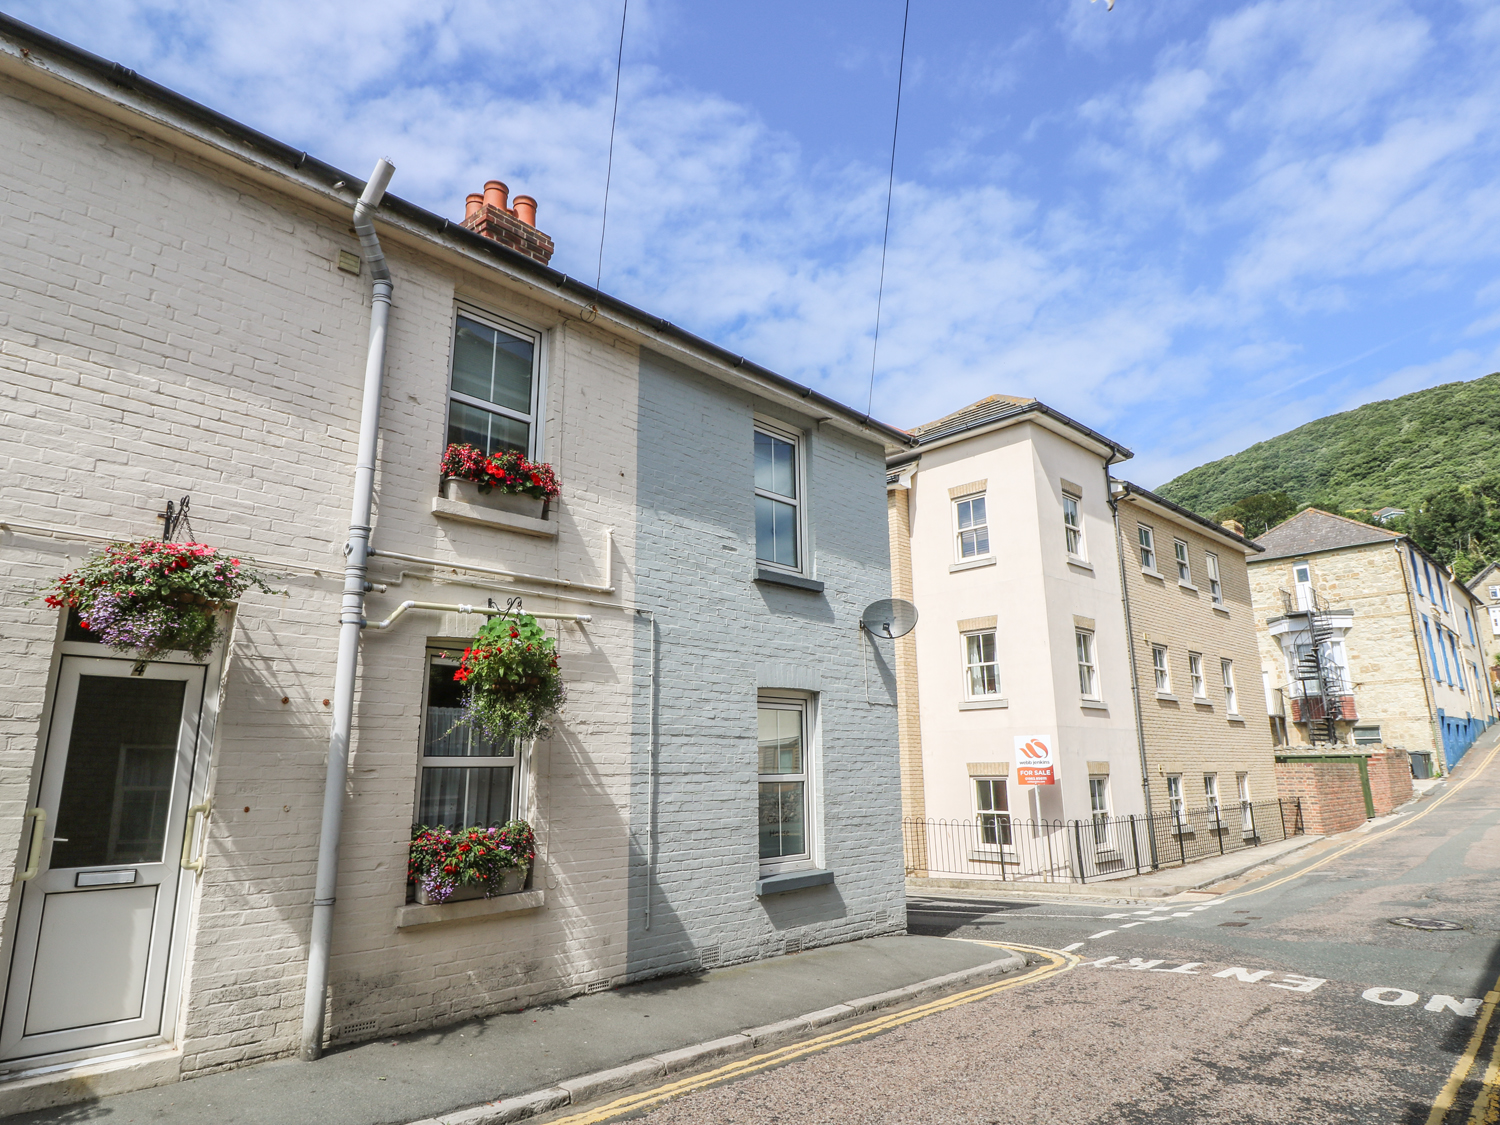 1 bedroom Cottage for rent in St Lawrence, Ventnor